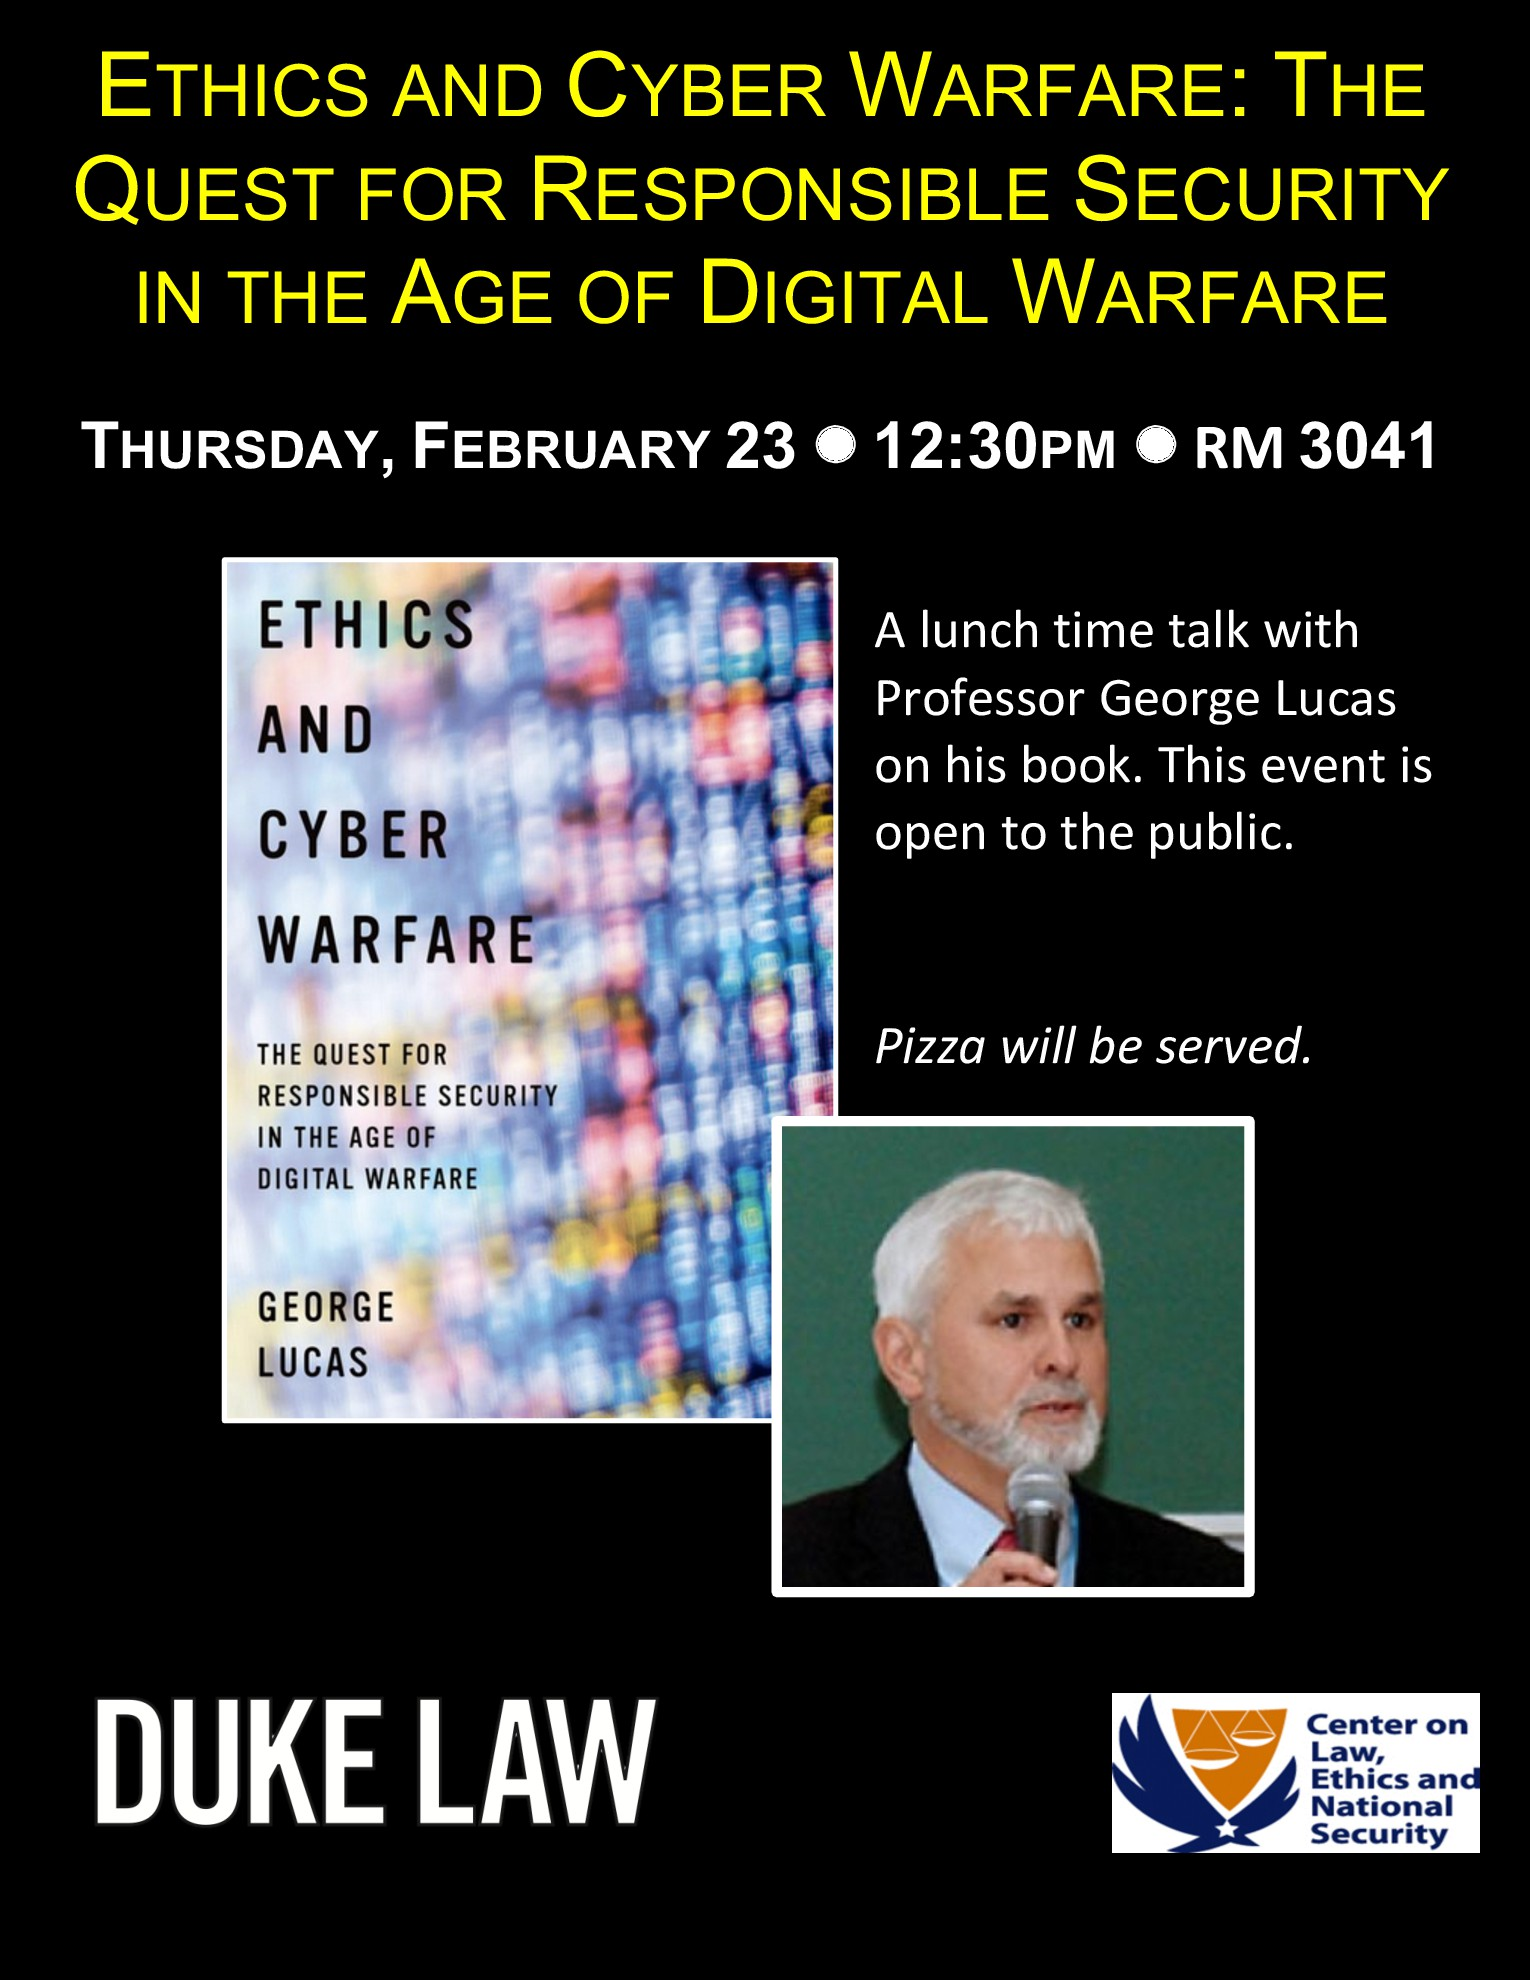 """""""Ethics & Cyber Warfare: The Quest for Responsible Security in the Age of Digital Warfare"""" A Conversation with George Lucas @ Room 3041, Duke Law School 